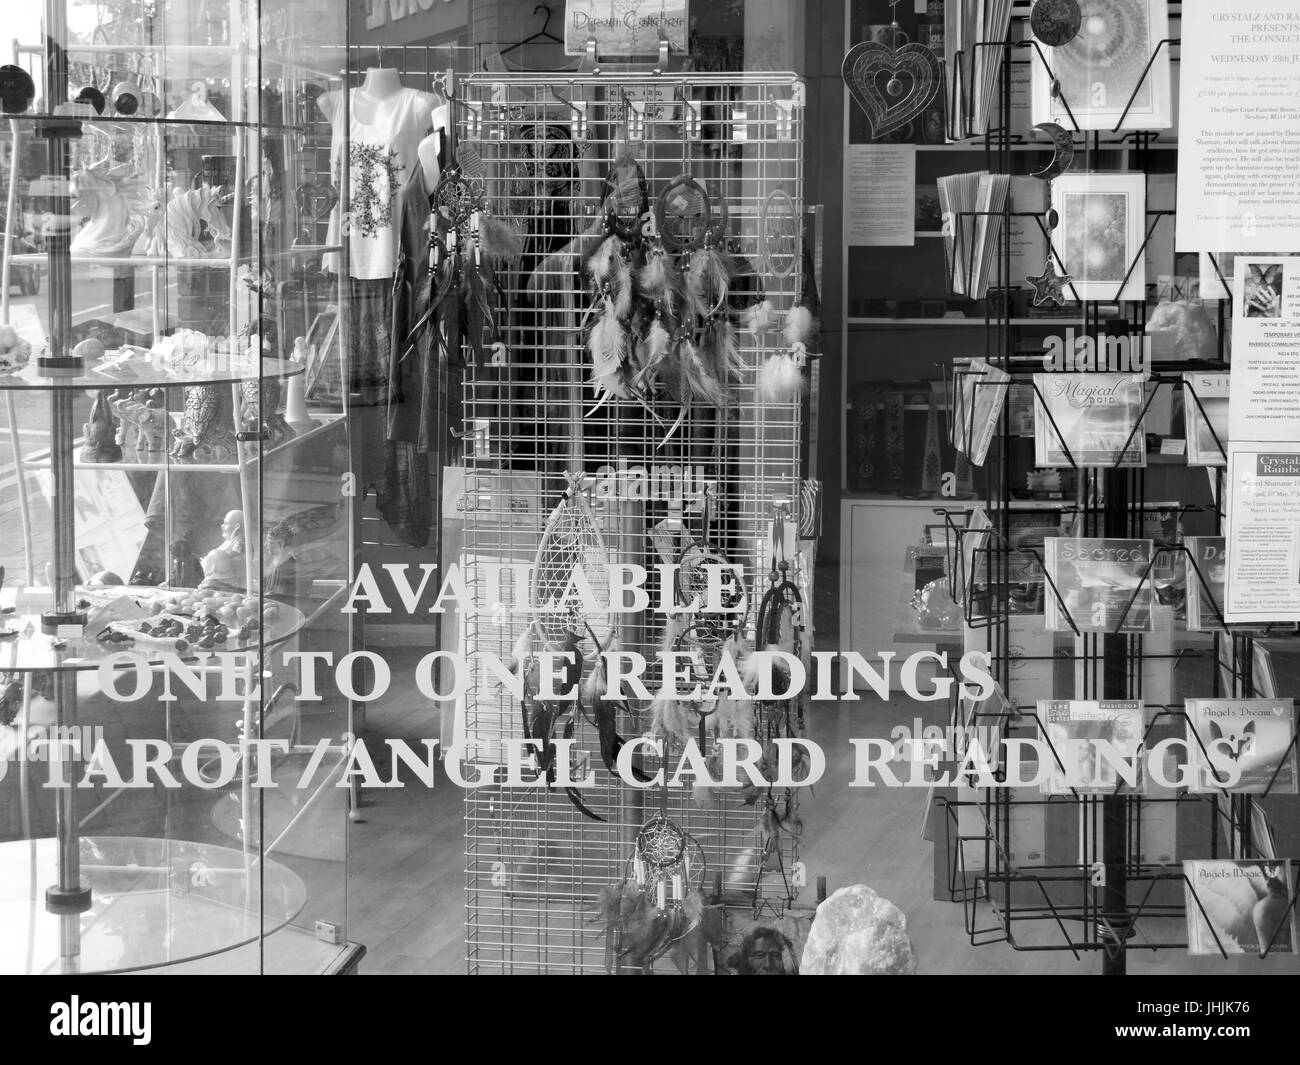 Available one to one readings, Tarot and Angel card readings sign in shop window, used to predict the future Stock Photo